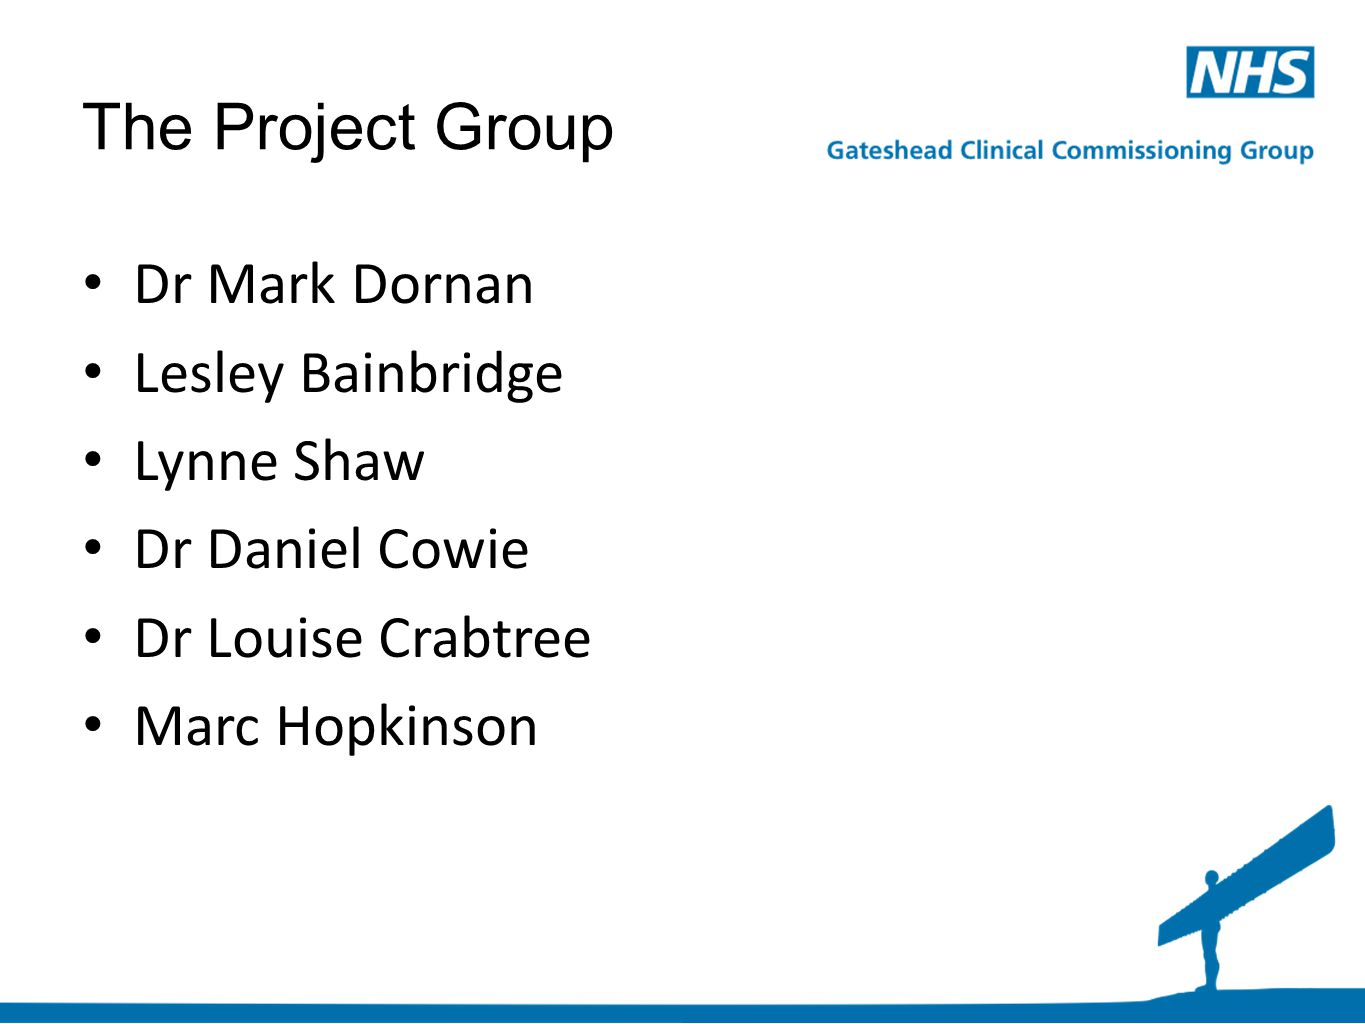 The Project Group Dr Mark Dornan Lesley Bainbridge Lynne Shaw Dr Daniel Cowie Dr Louise Crabtree Marc Hopkinson